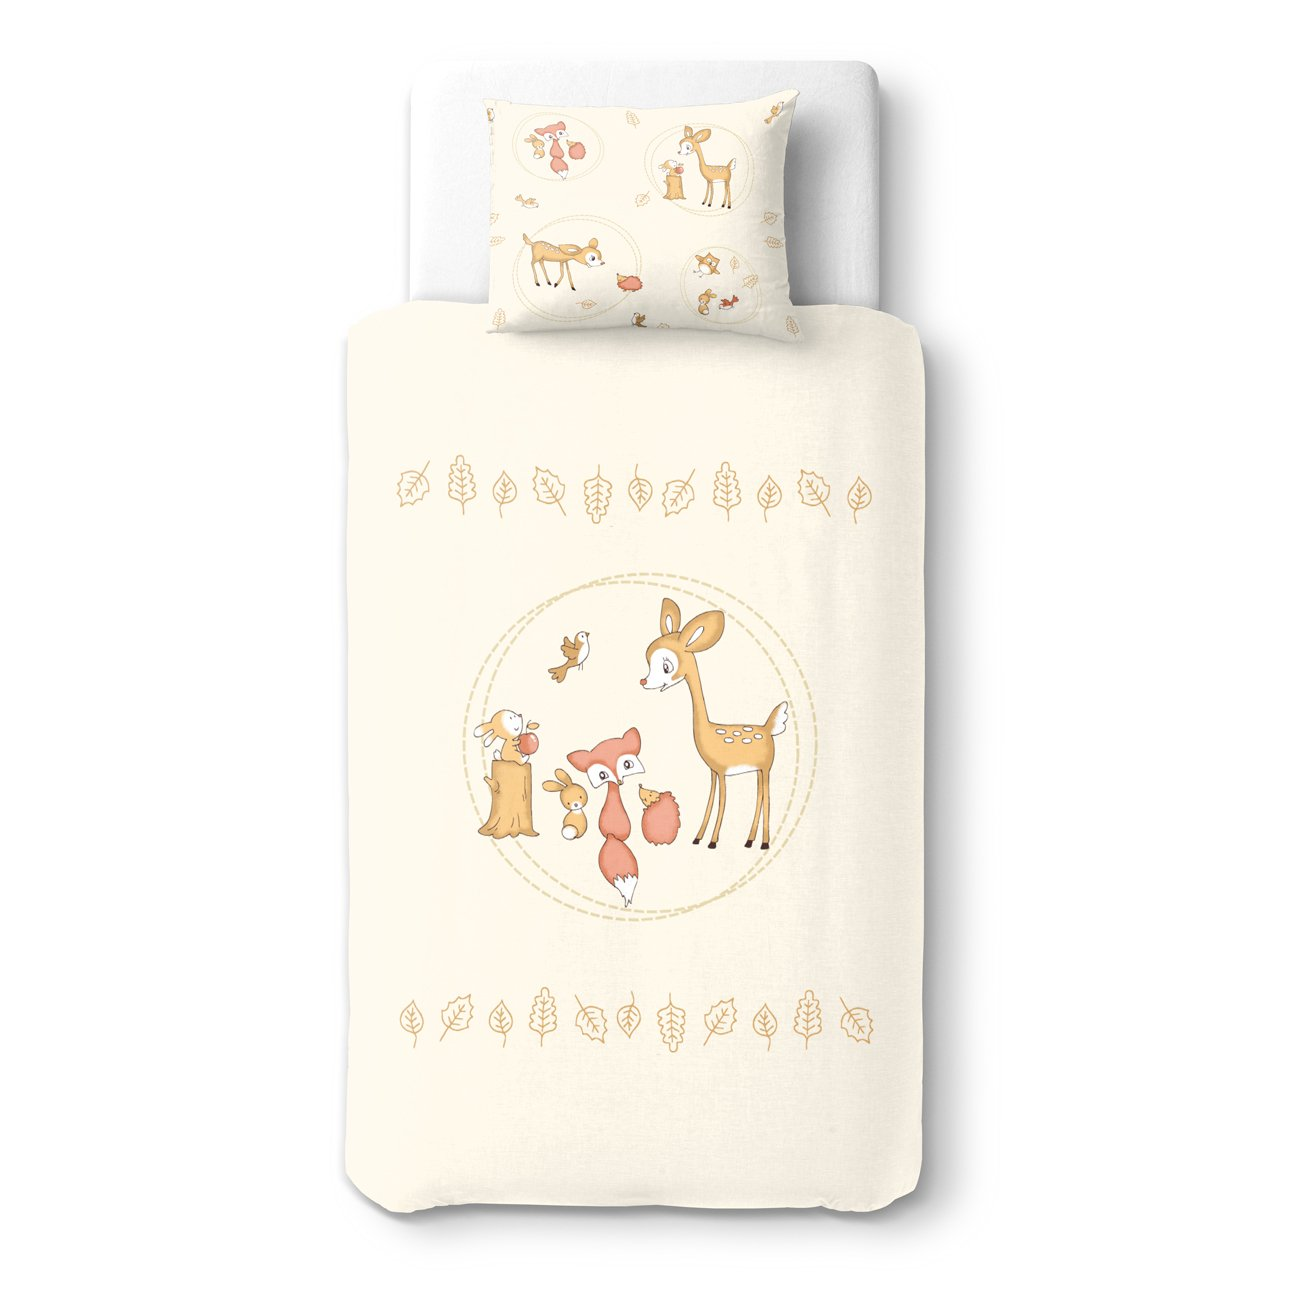 Baby Deer & Friends Party - SoulBedroom 100% Cotton Bed Set (Duvet Cover 39''x 55'' cm & Pillow Case 15''x 23'' cm)